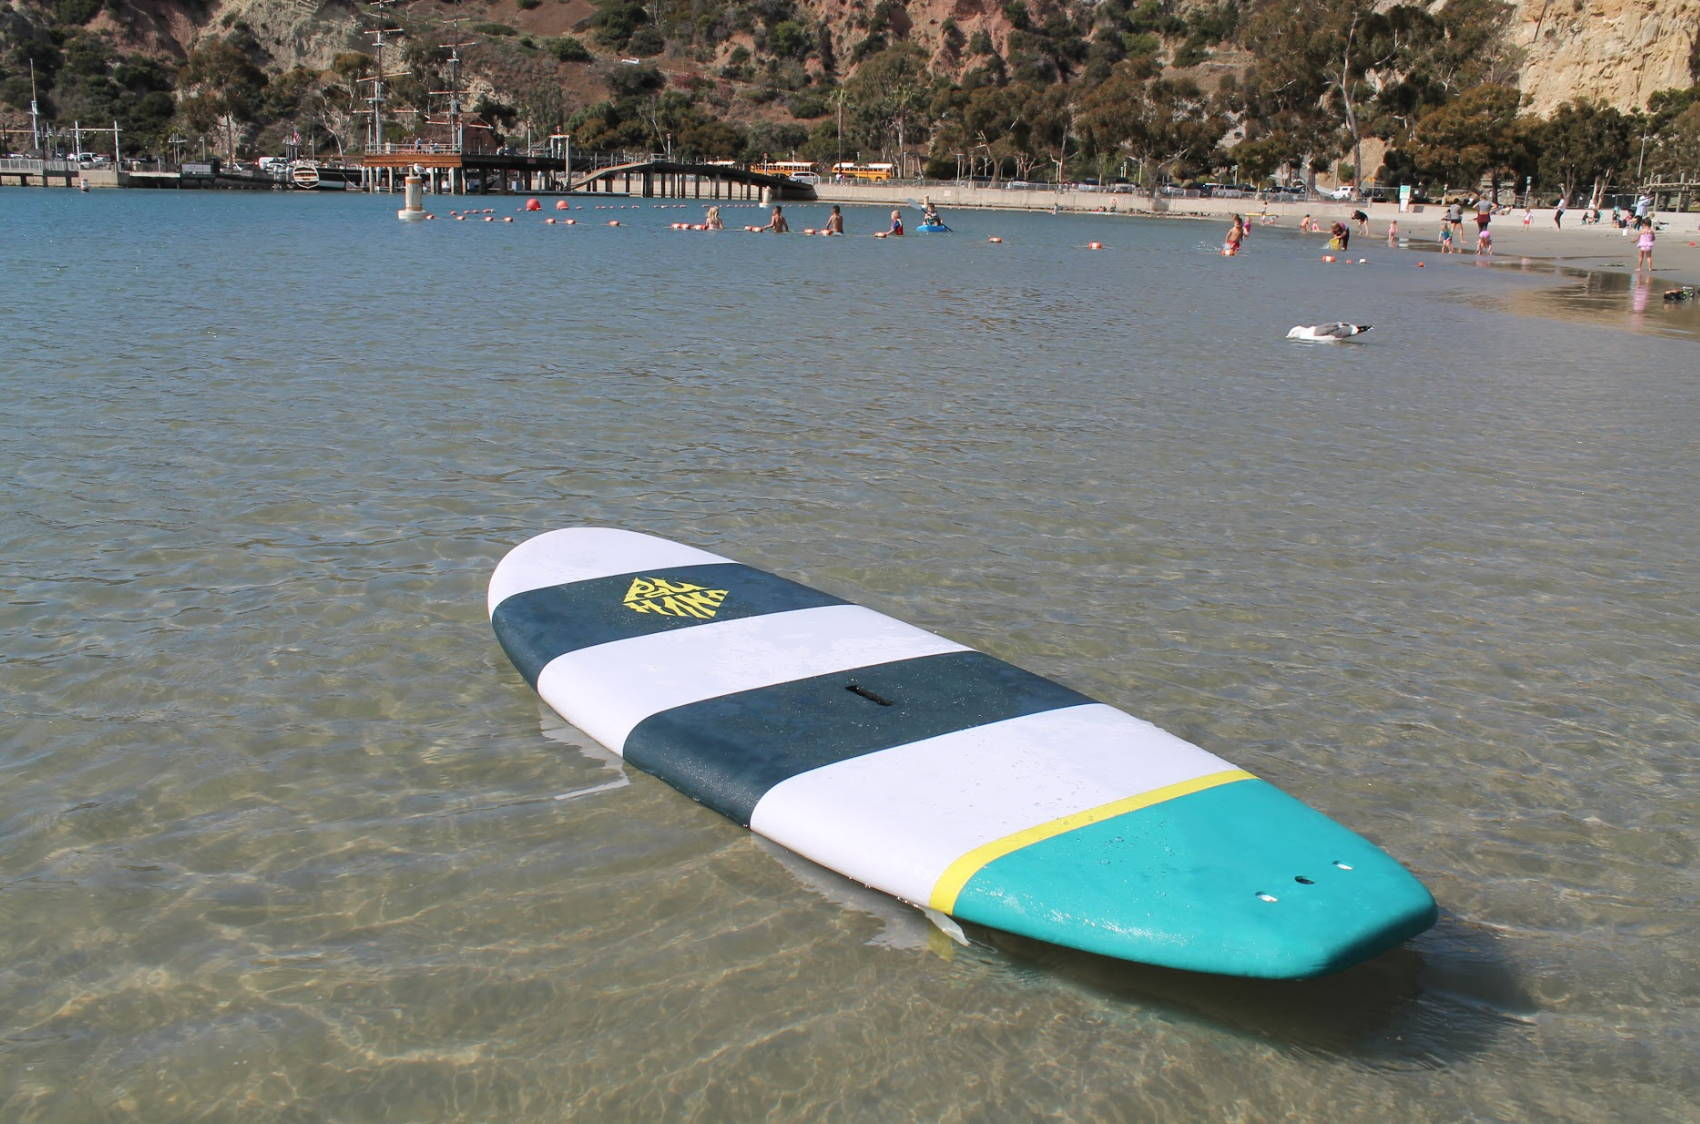 This is the best kids paddle board. Grom kids stand up paddle board by Pau hana